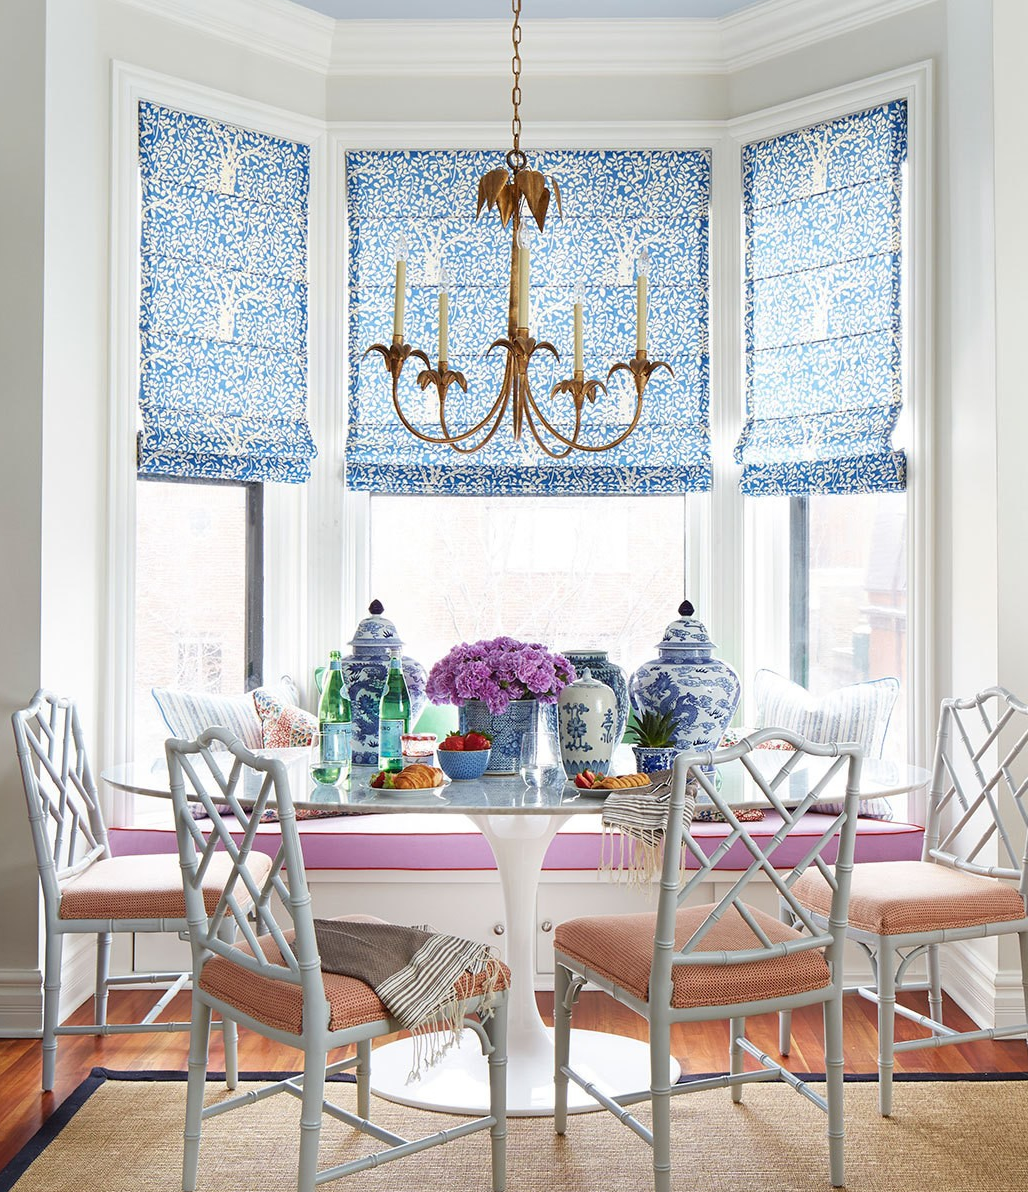 China seas arbre de matisse reverse window shades by for Summer thornton design